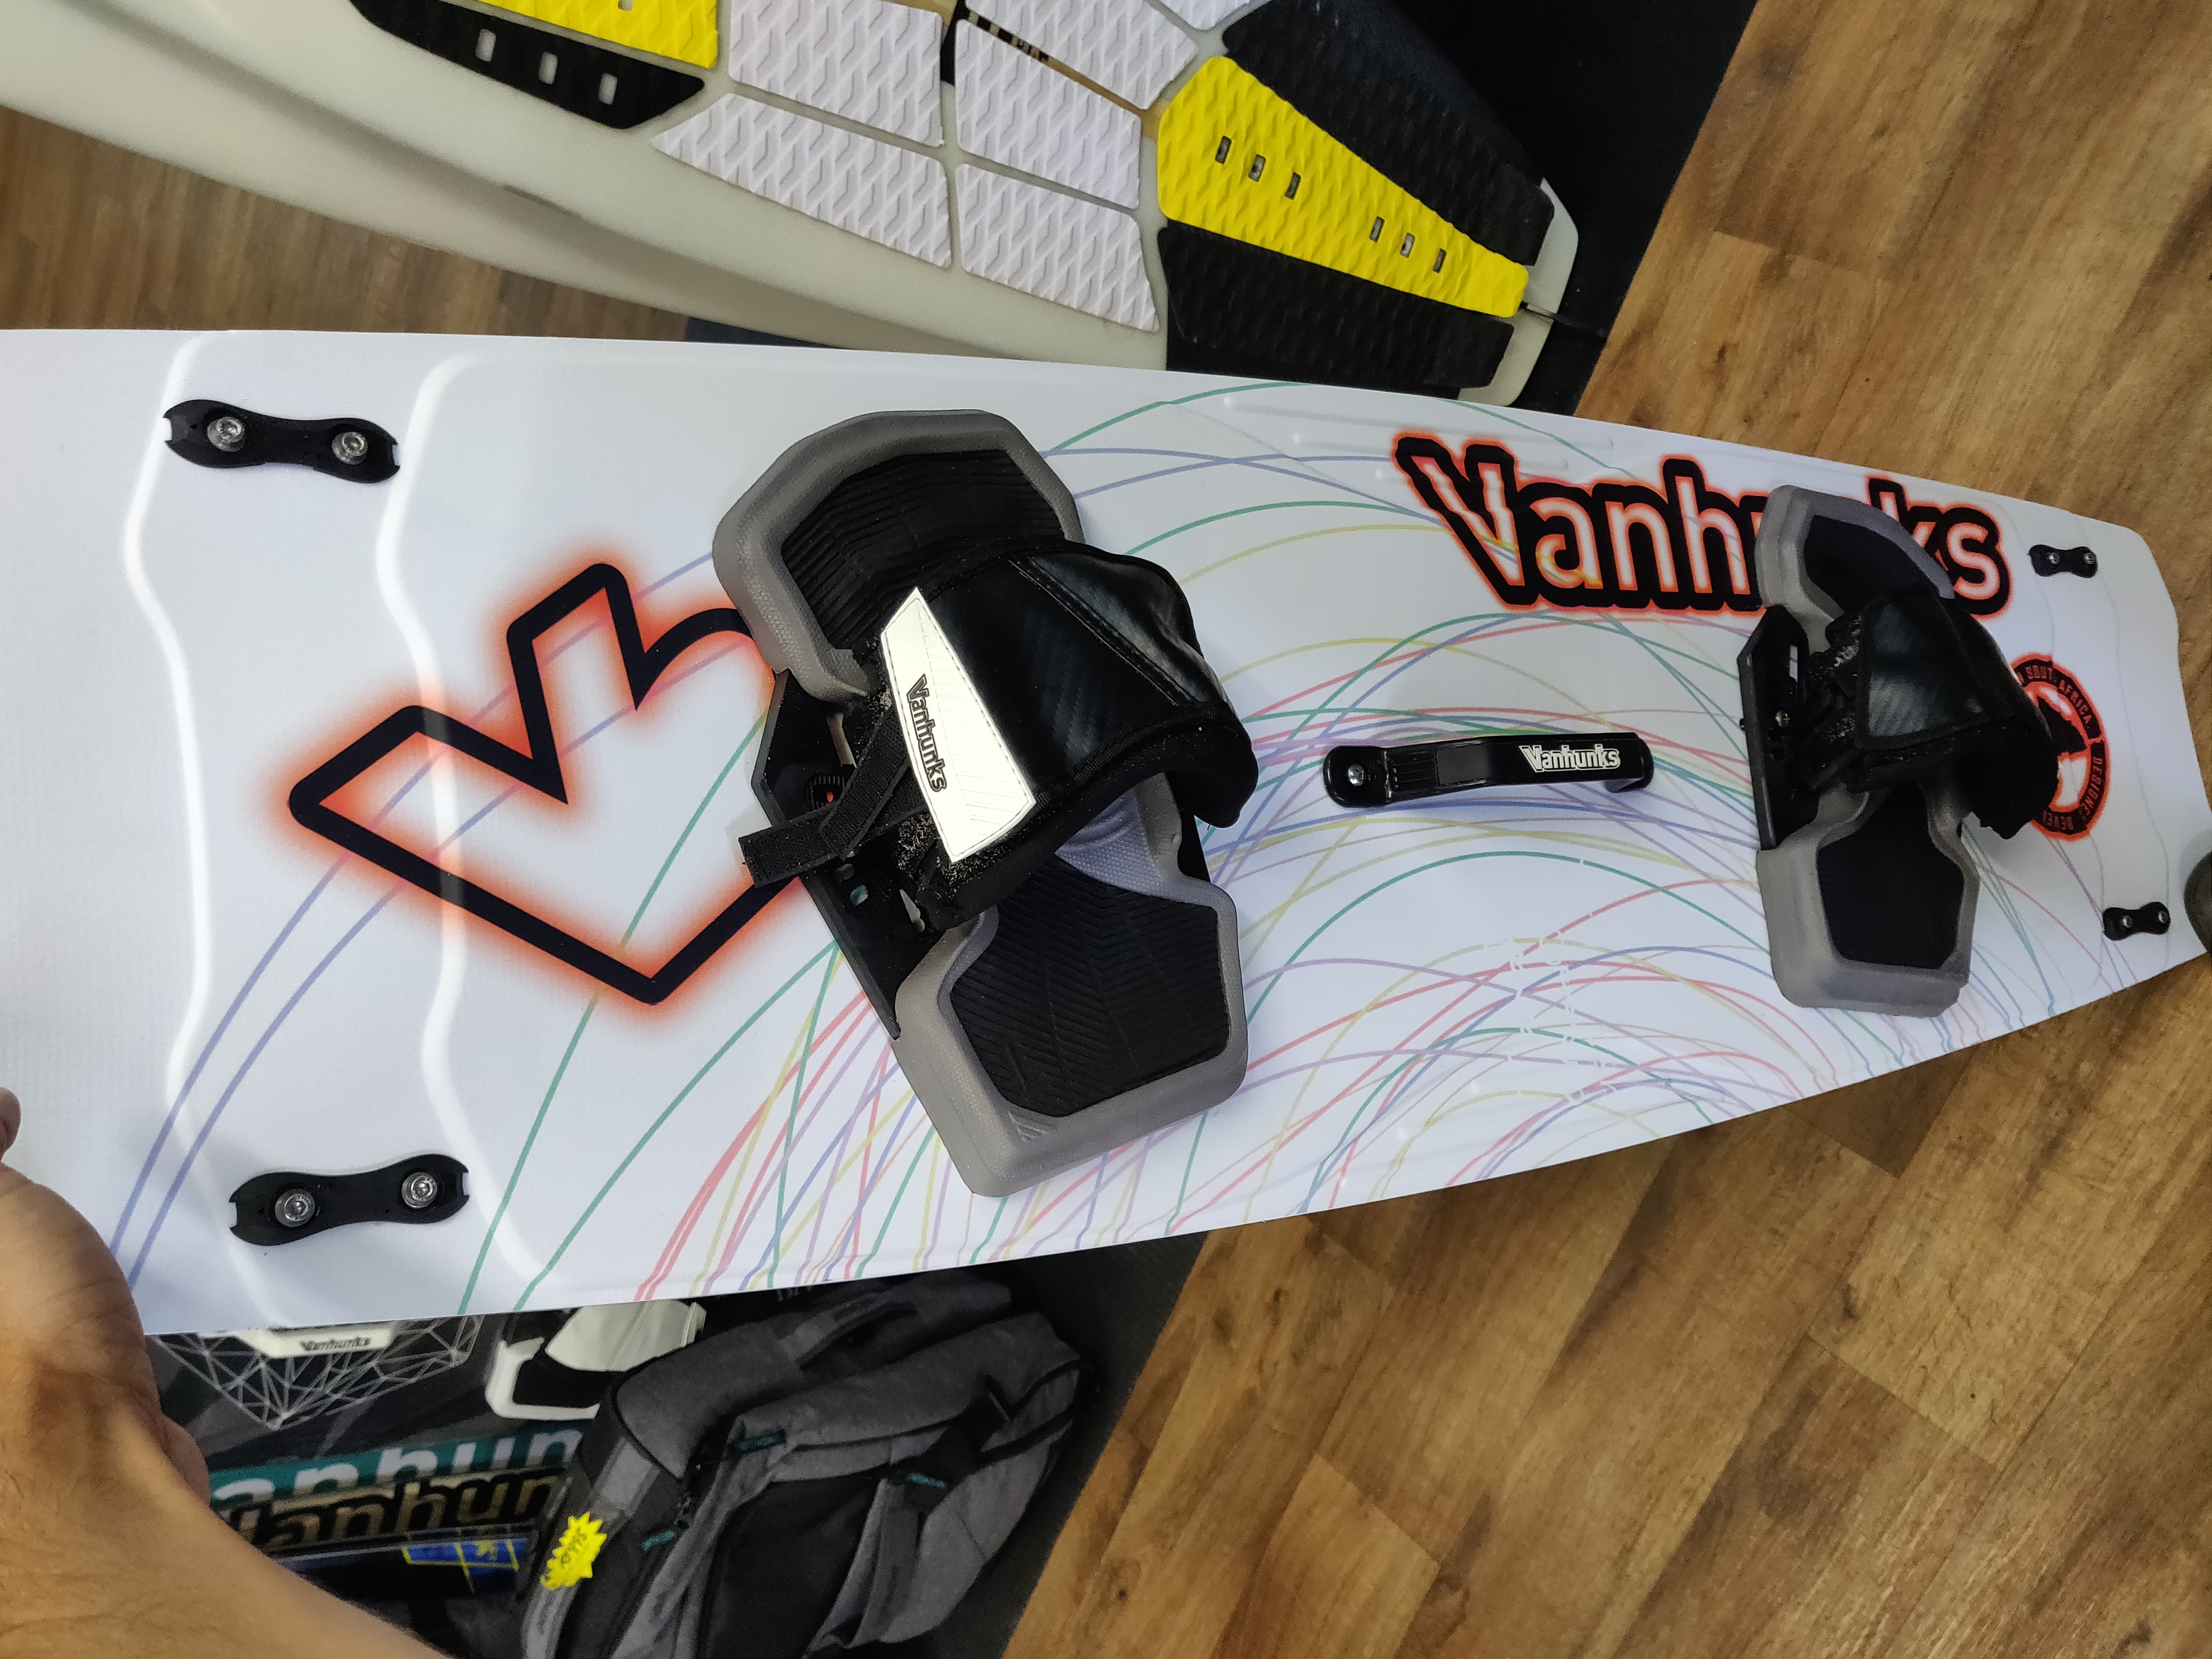 Vanhunks Limited Edition 137×41 Kite Board (Less than 10 uses)